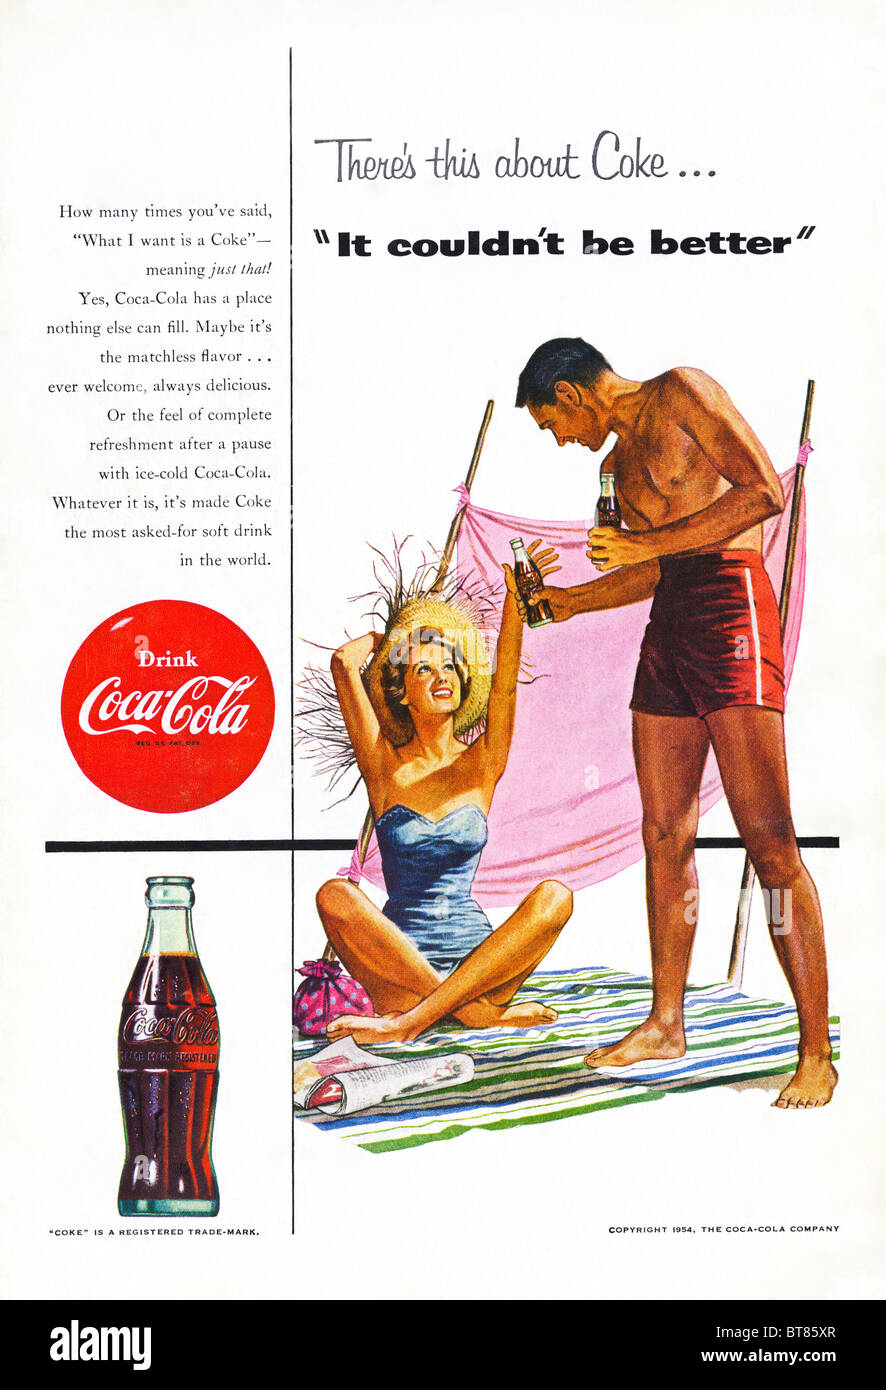 Classic advert in American magazine for Coca-Cola July 1954 - Stock Image